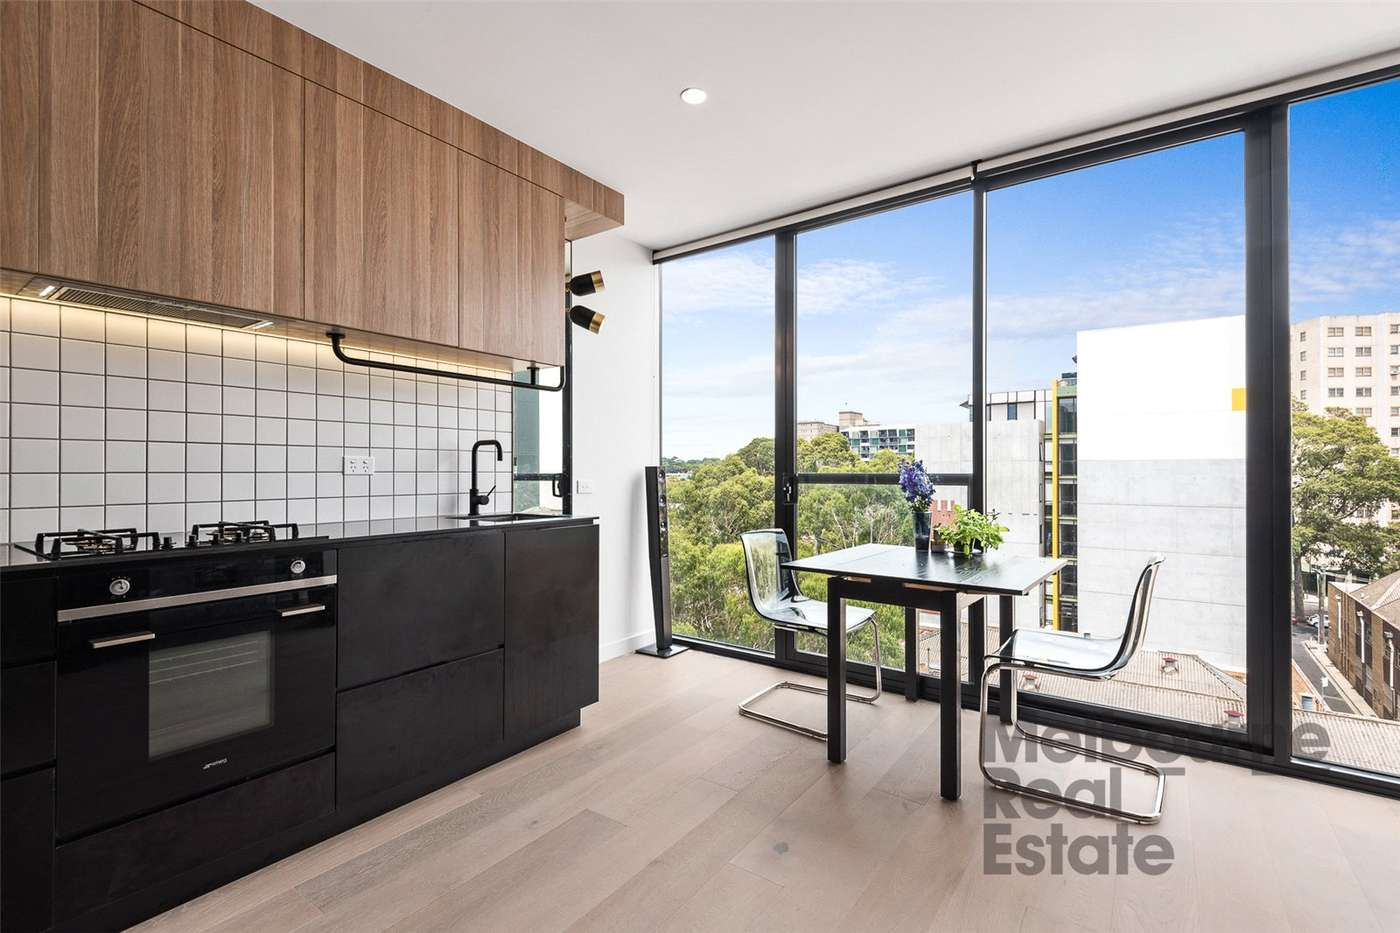 Main view of Homely apartment listing, 505/36 Wilson Street, South Yarra, VIC 3141